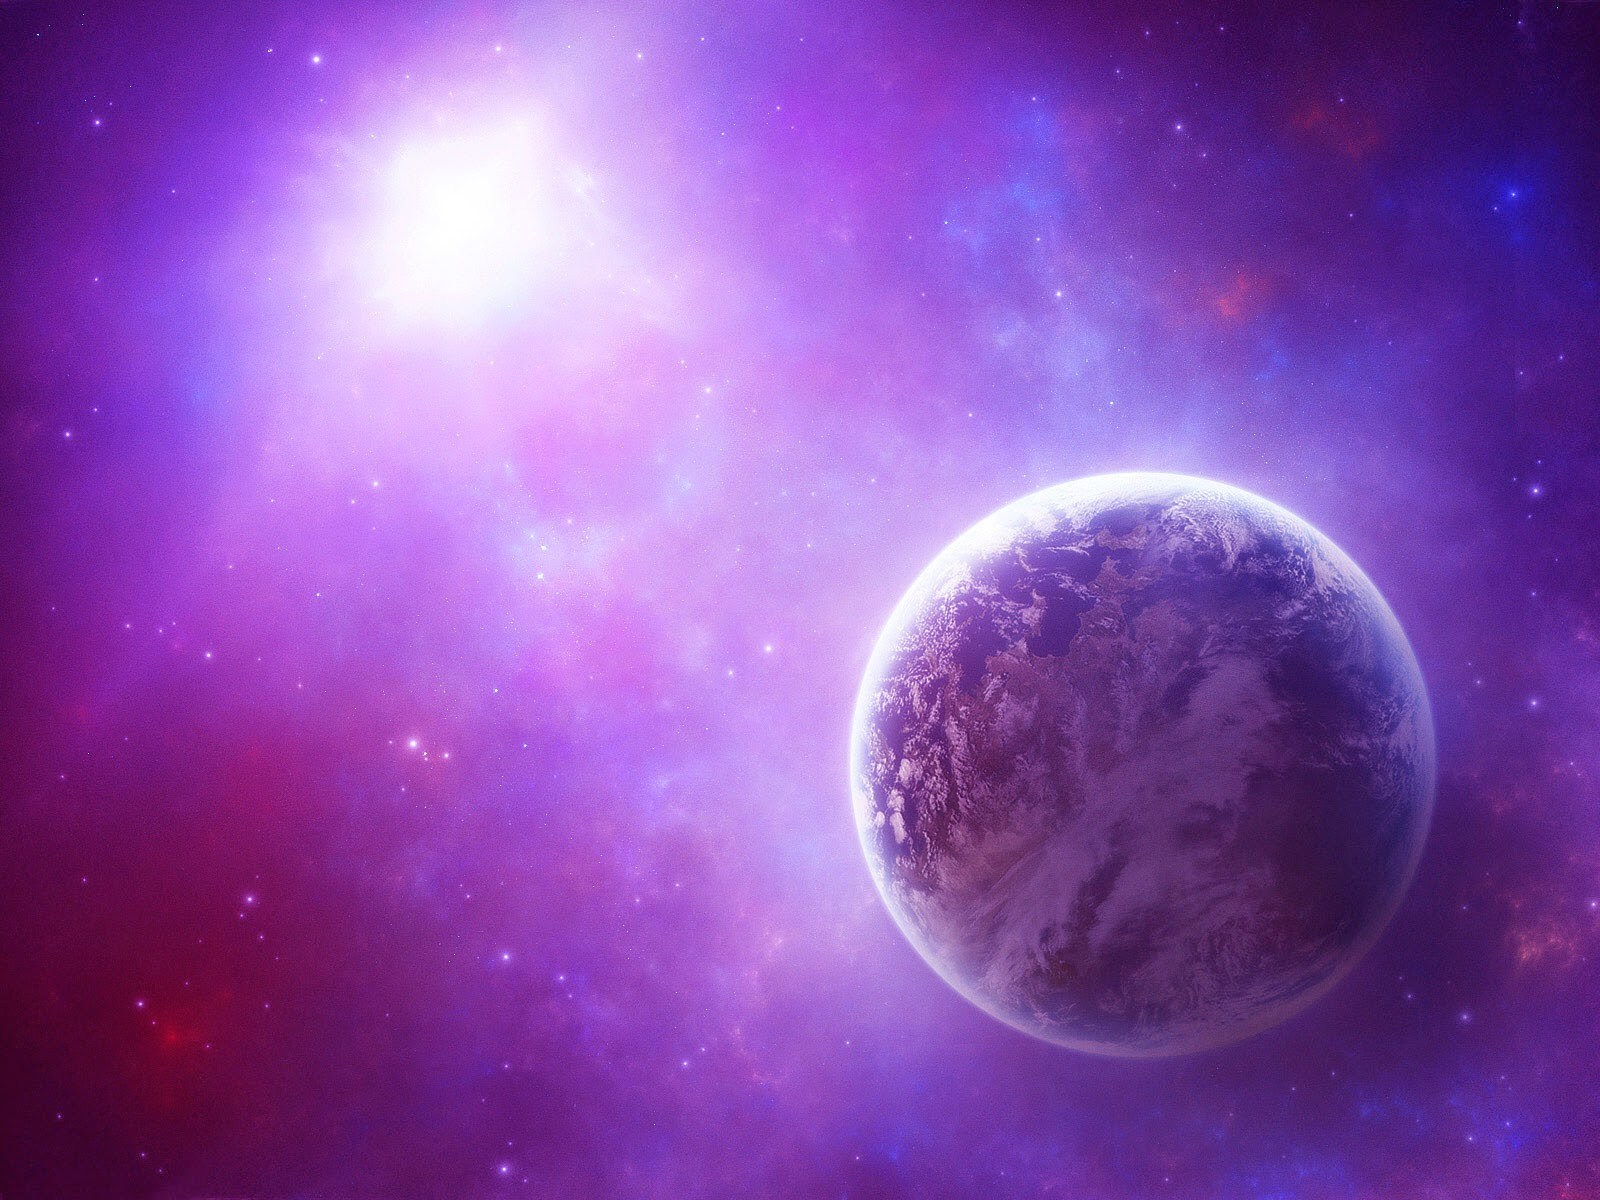 earth-outer-space-wallpapers-for-desktop.jpg